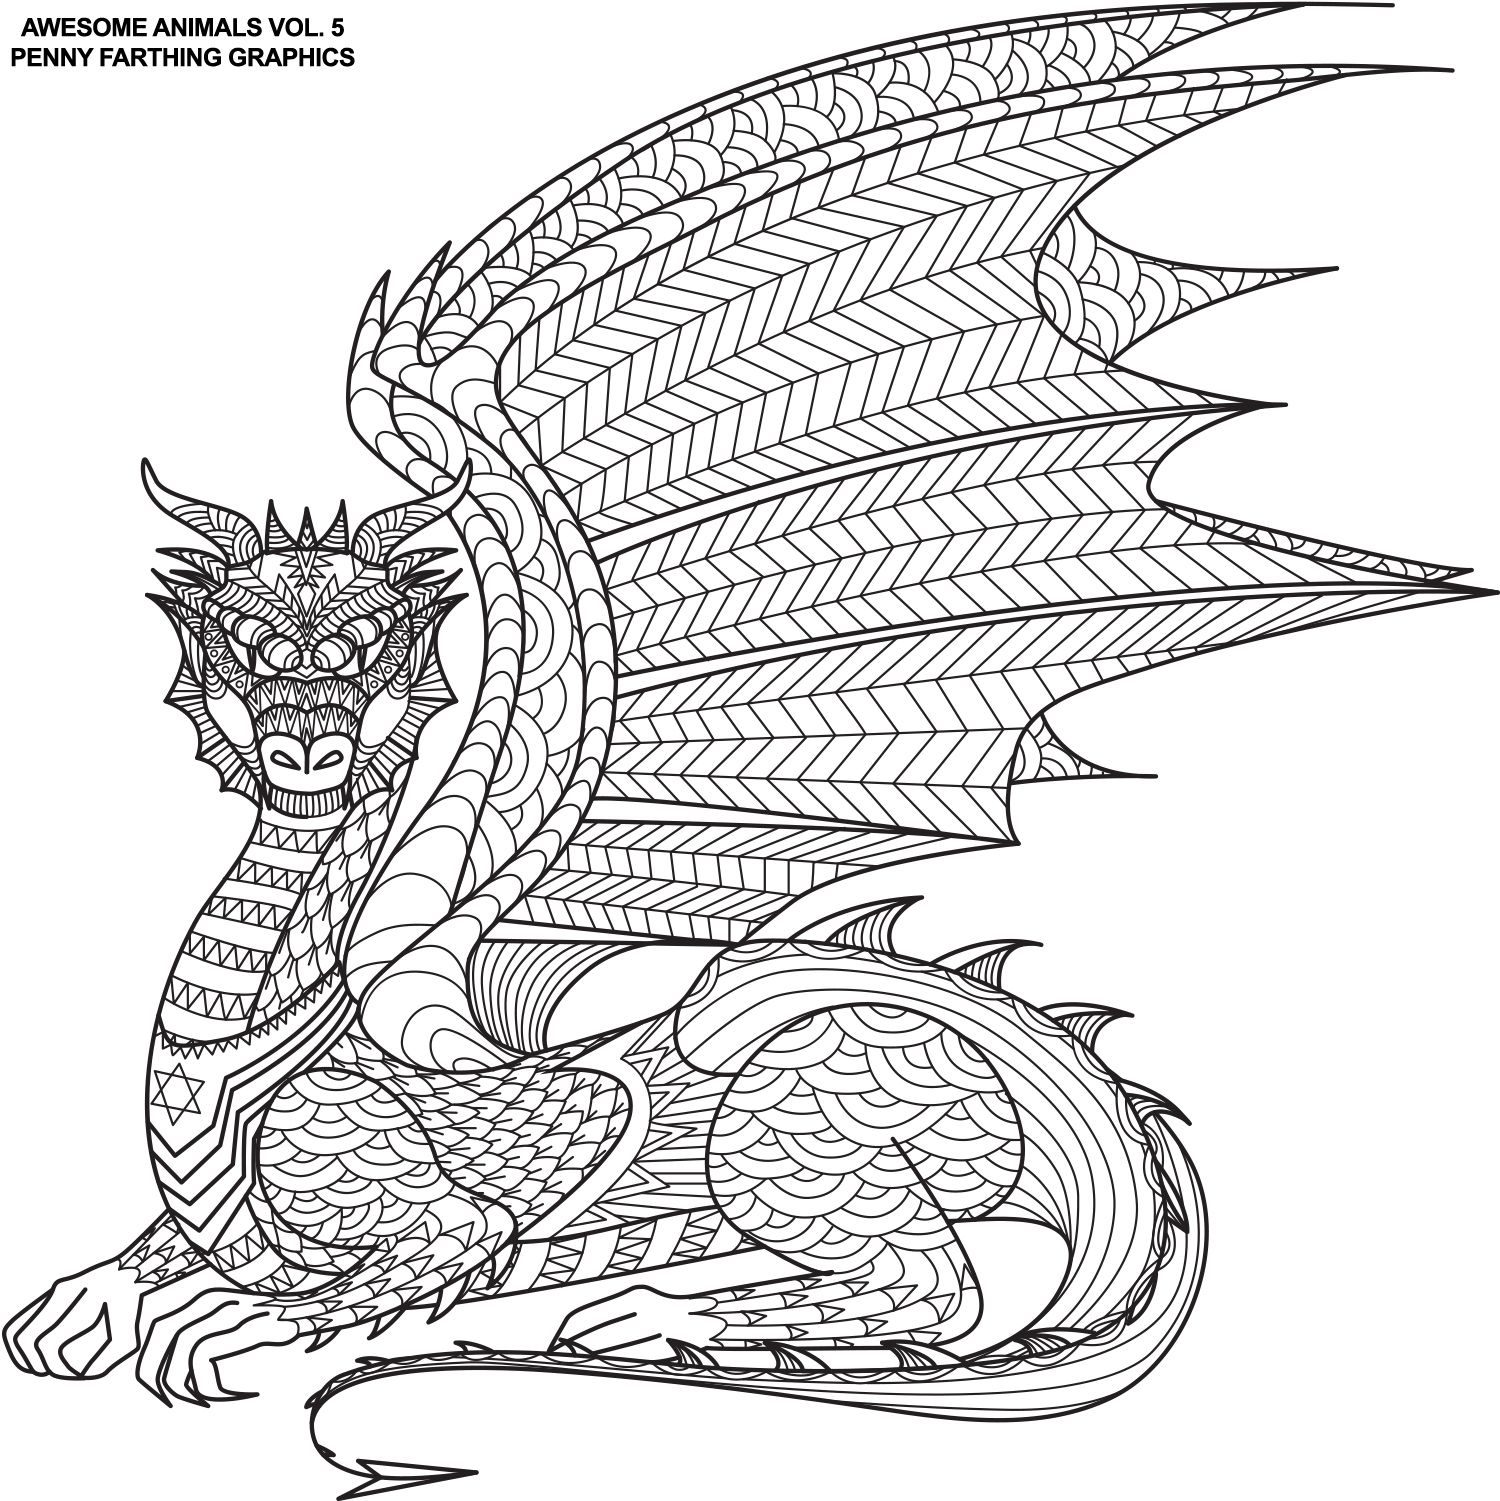 Ausmalbilder Für Erwachsene Drachen : The Dragon From Awesome Animals 5 Coloring Pinterest